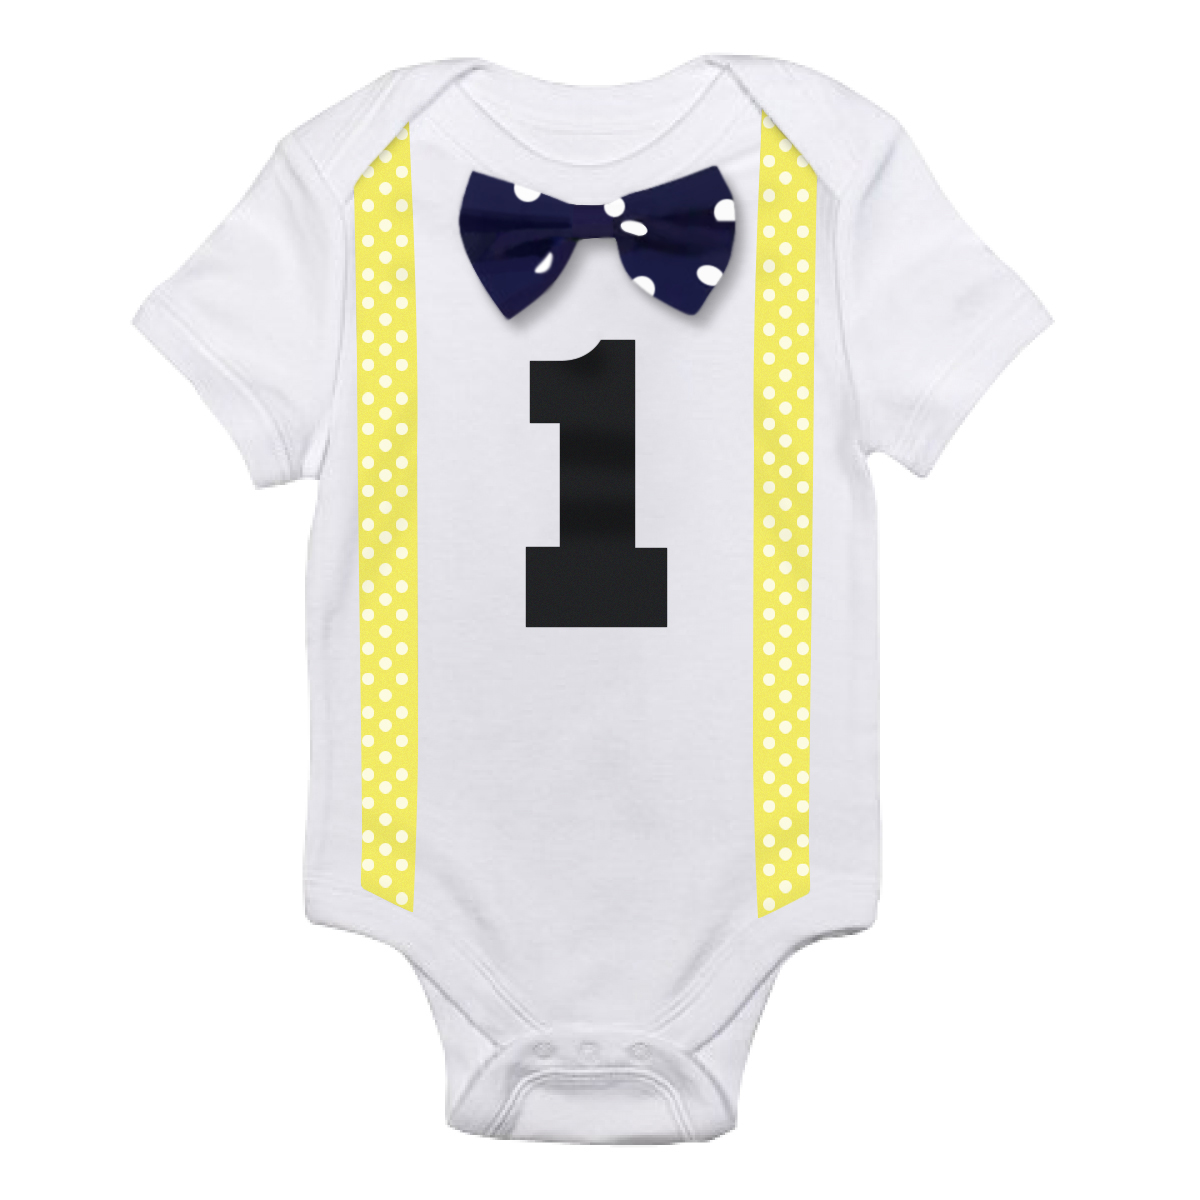 B2keevin Womens Round Collar Solid Short Sleeve Elastic Bodysuits Jumpsuits